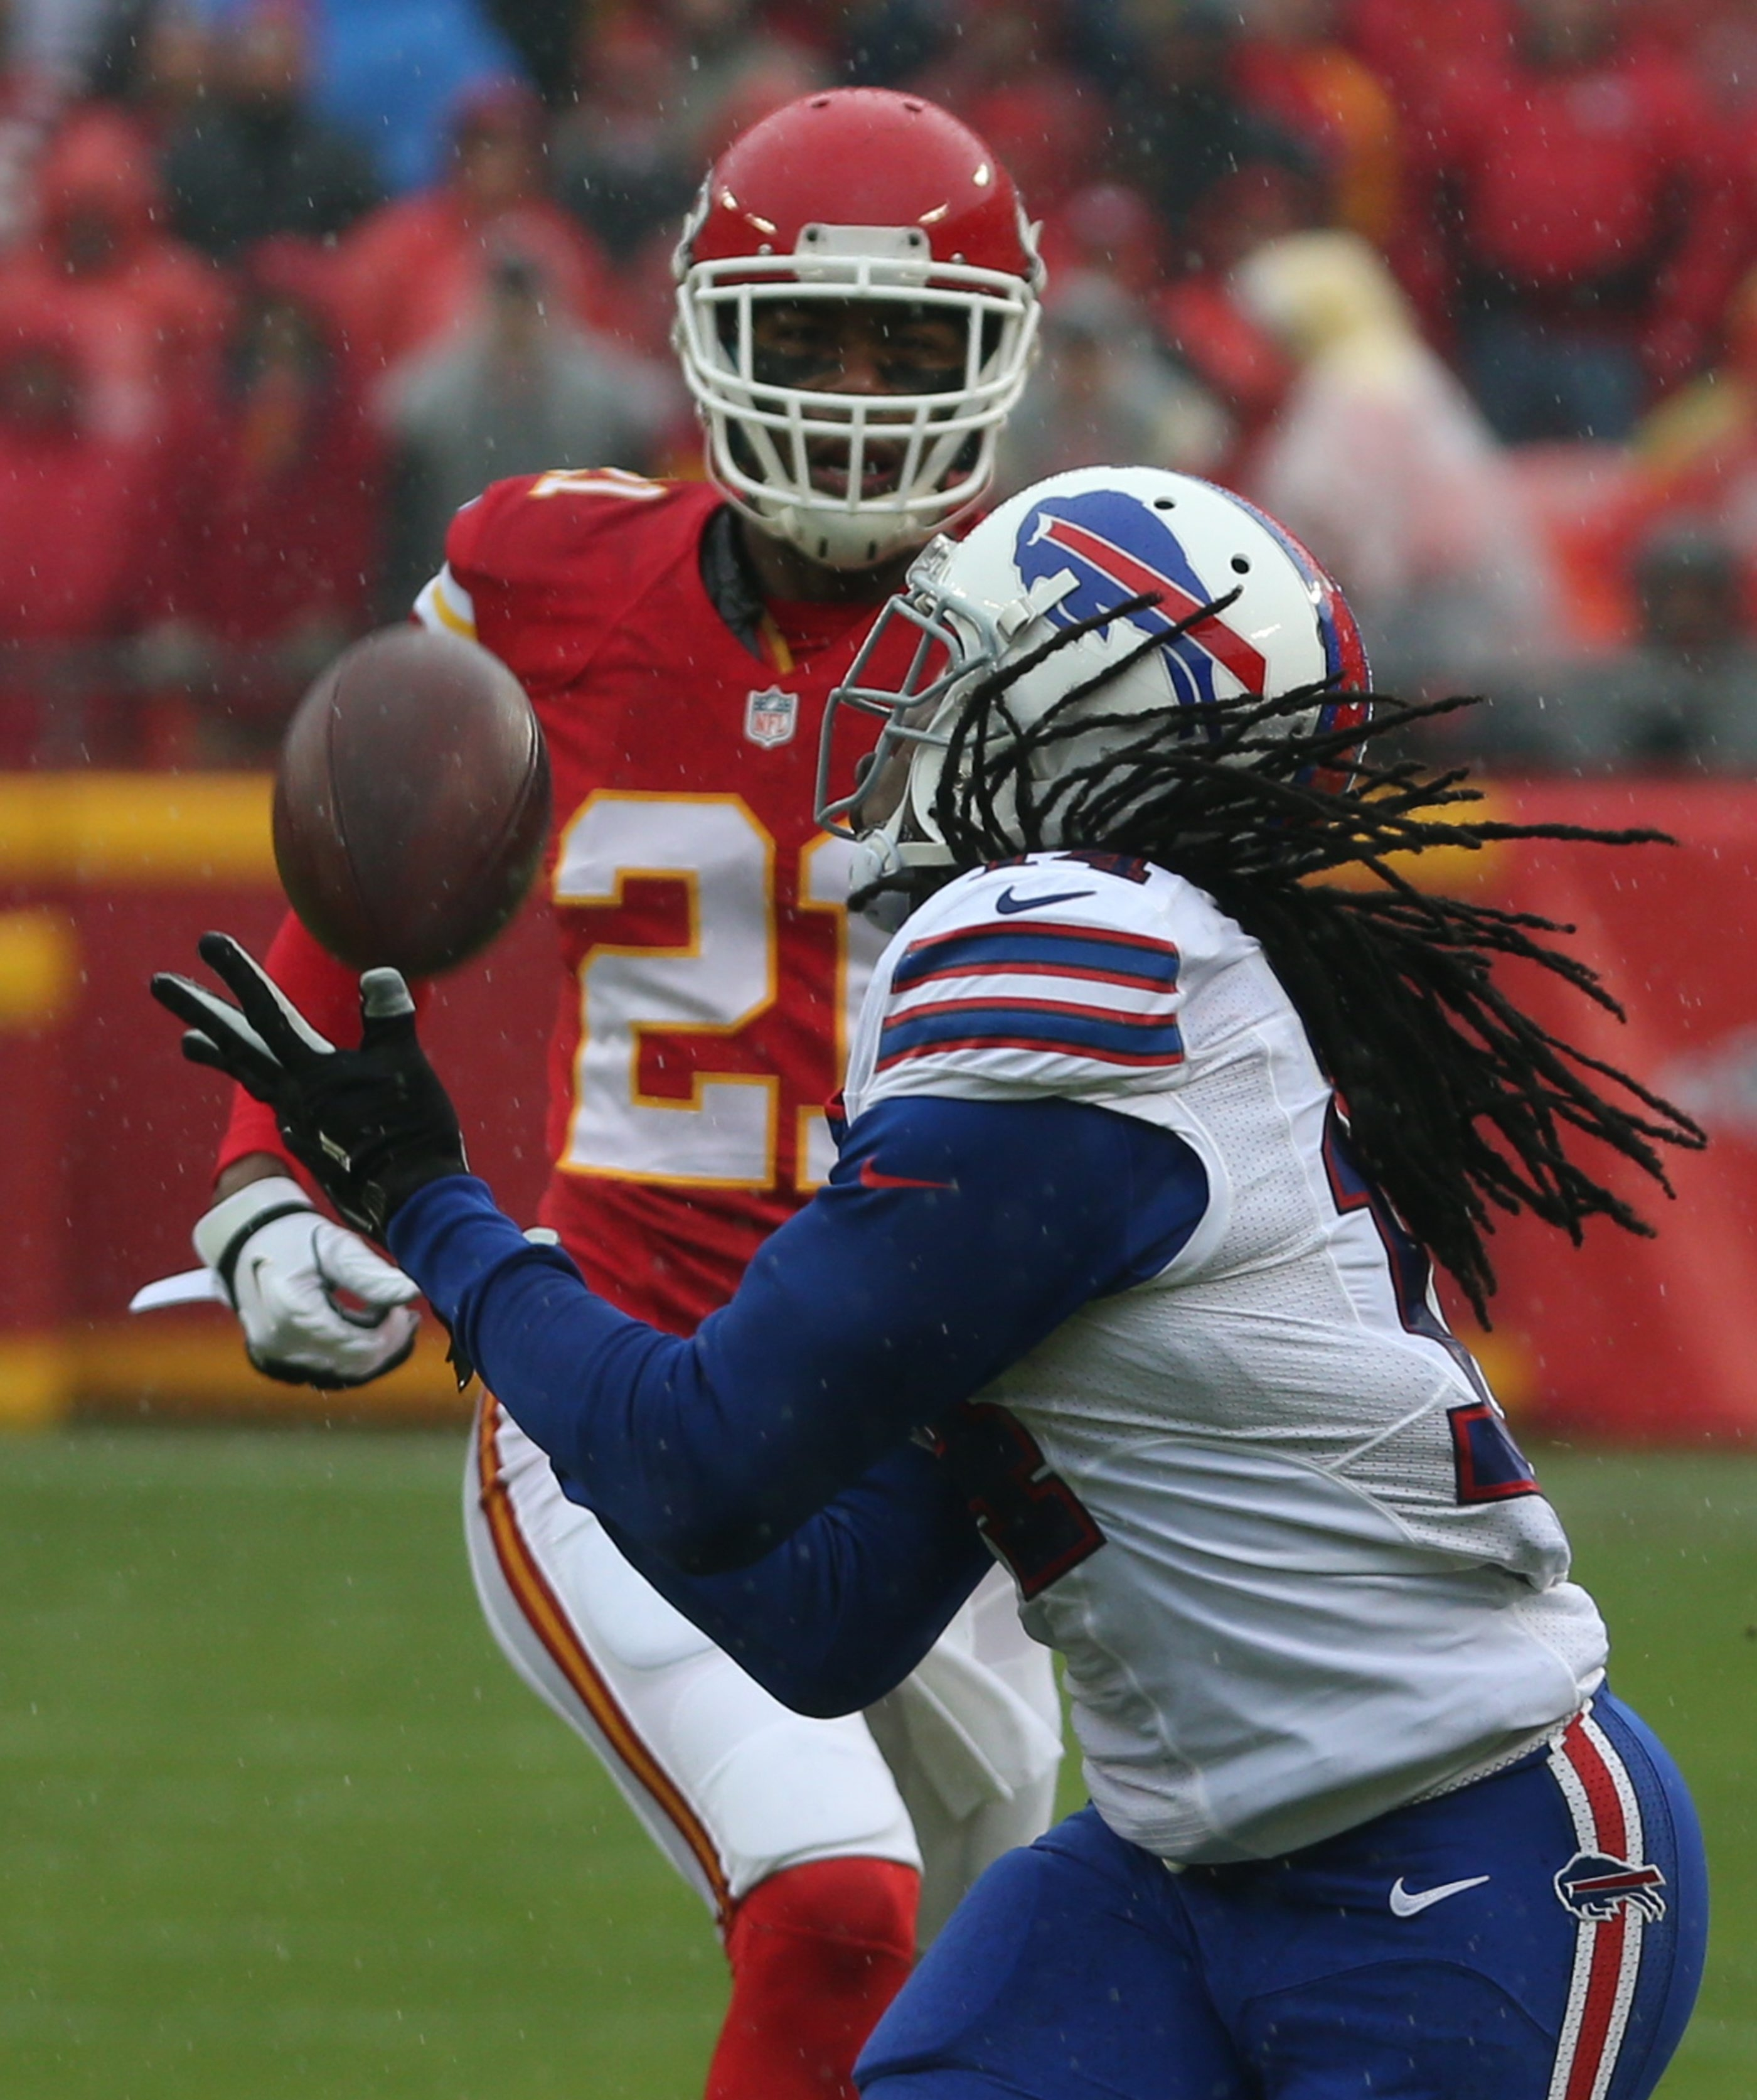 Bills receiver Sammy Watkins beats Chiefs cornerback Sean Smith in the first quarter. Watkins had 158 yards receiving in the first half, but no catches in the second half.